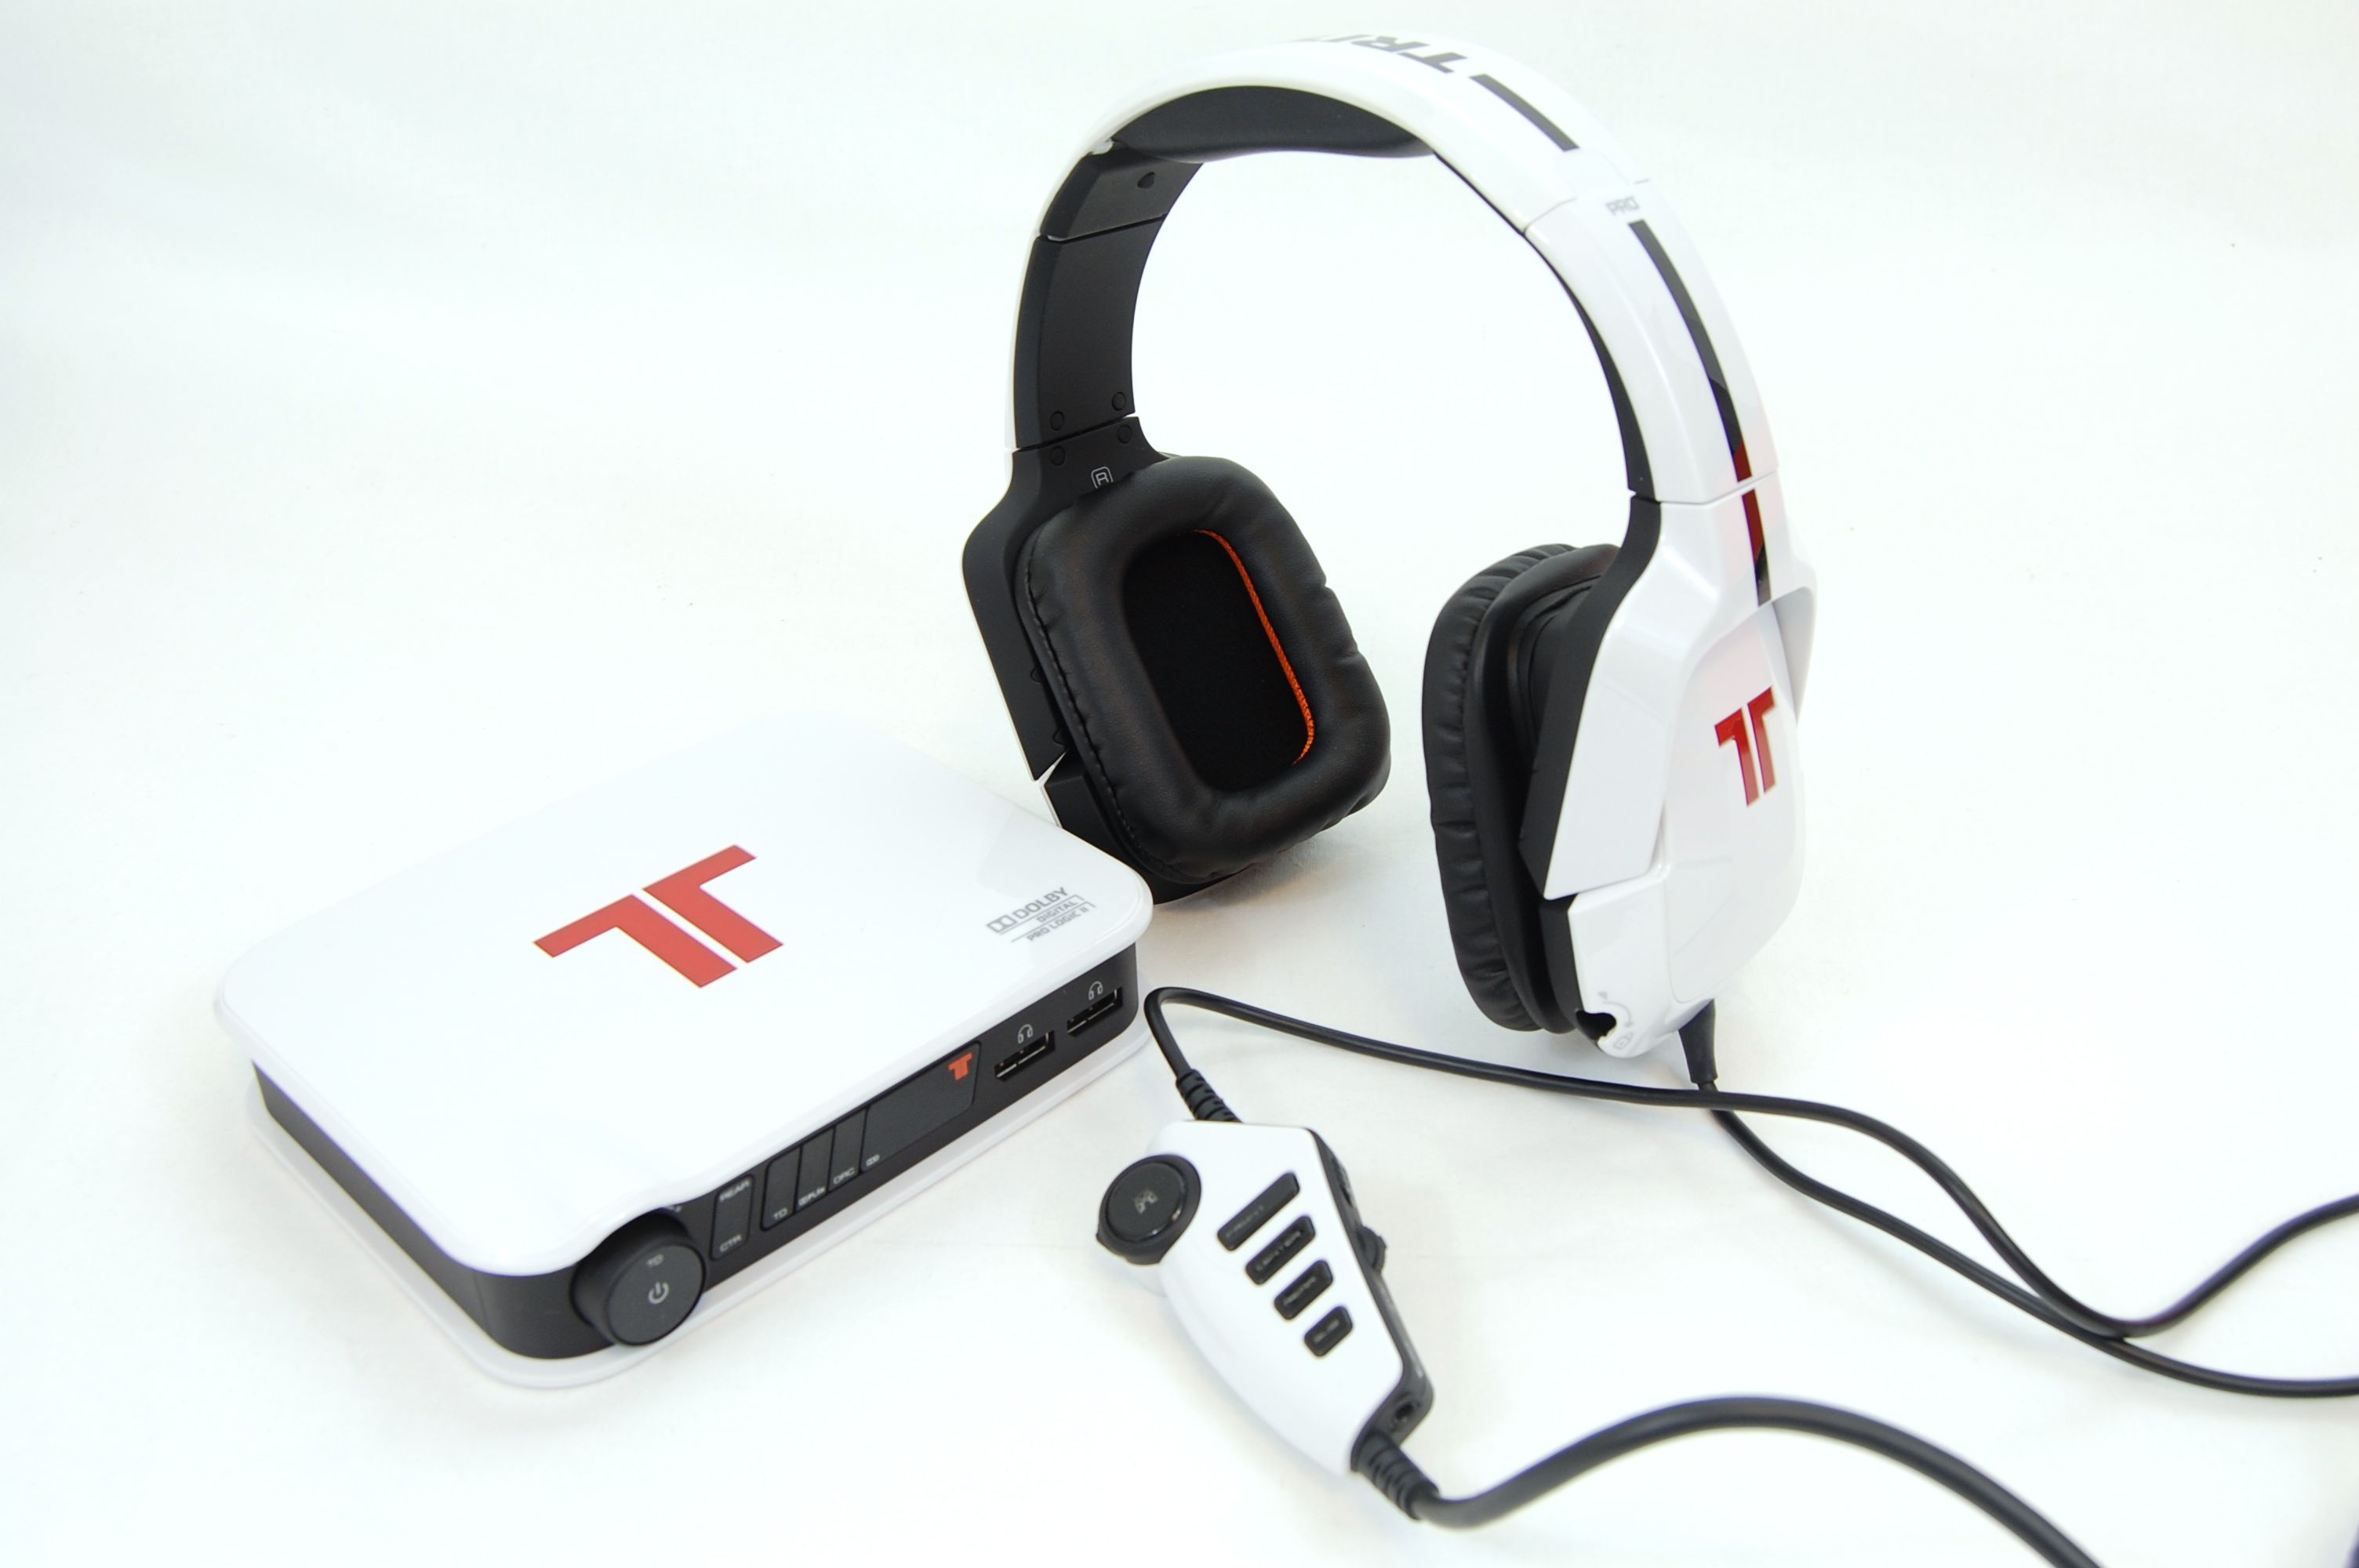 Tritton by MadCatz Pro+ 5.1 Surround Gaming Headset Review - Overview